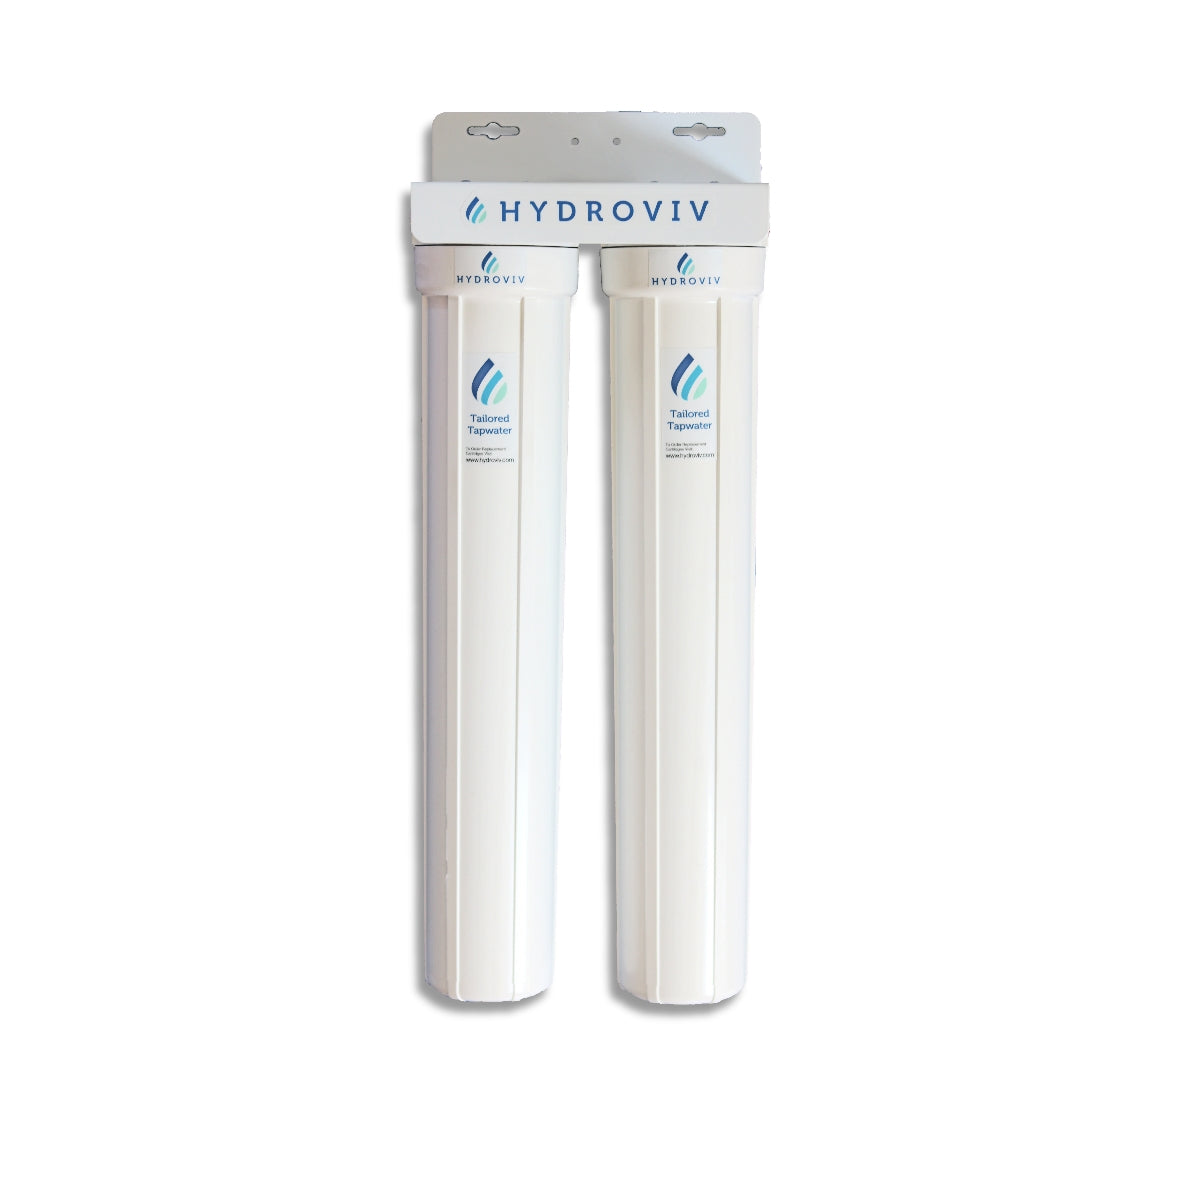 Whole House Filter Hydroviv Whole House Water Filter Sulfur Removal